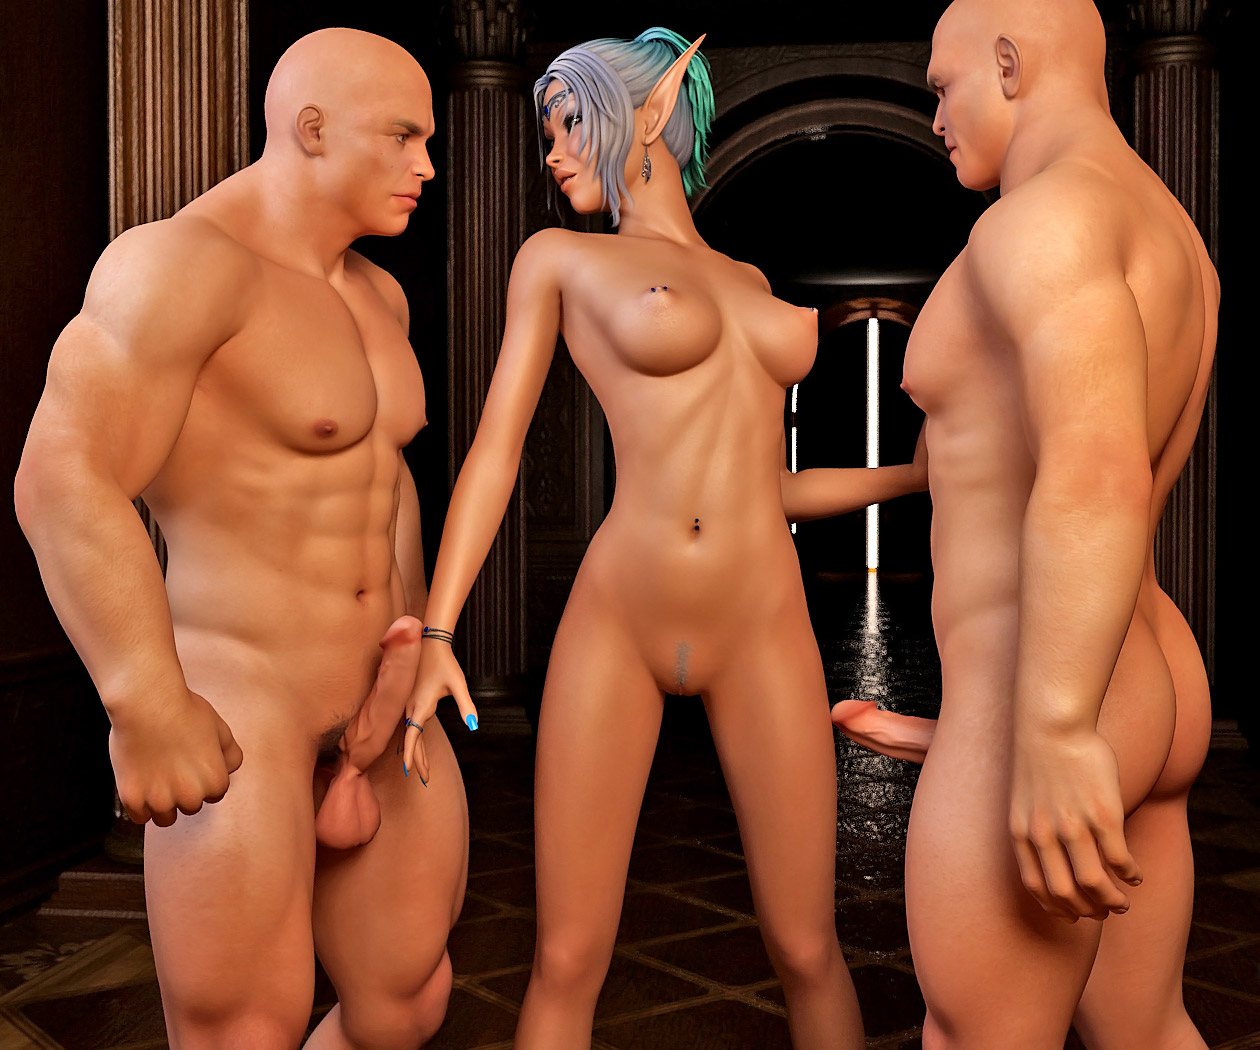 Naked sexy elf woman fucking video erotica pussys